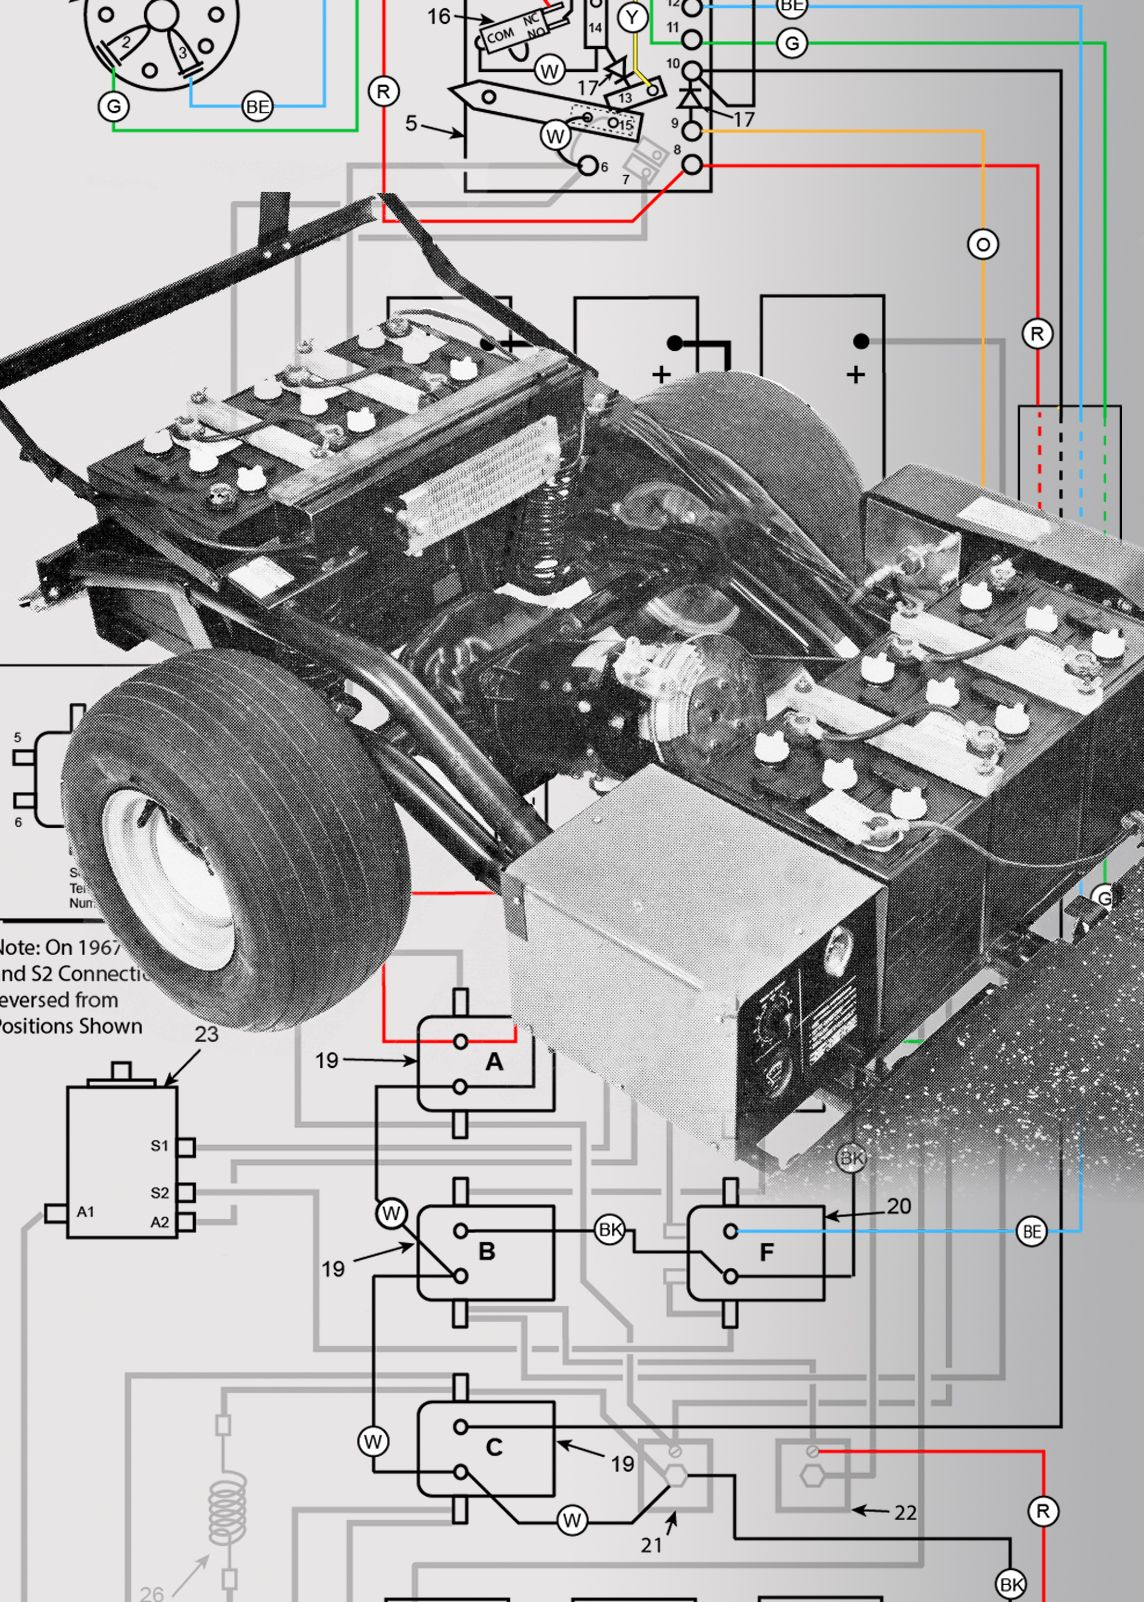 hight resolution of colora coded wiring diagram for 1967 through 1970 harley davidson de model golf carts